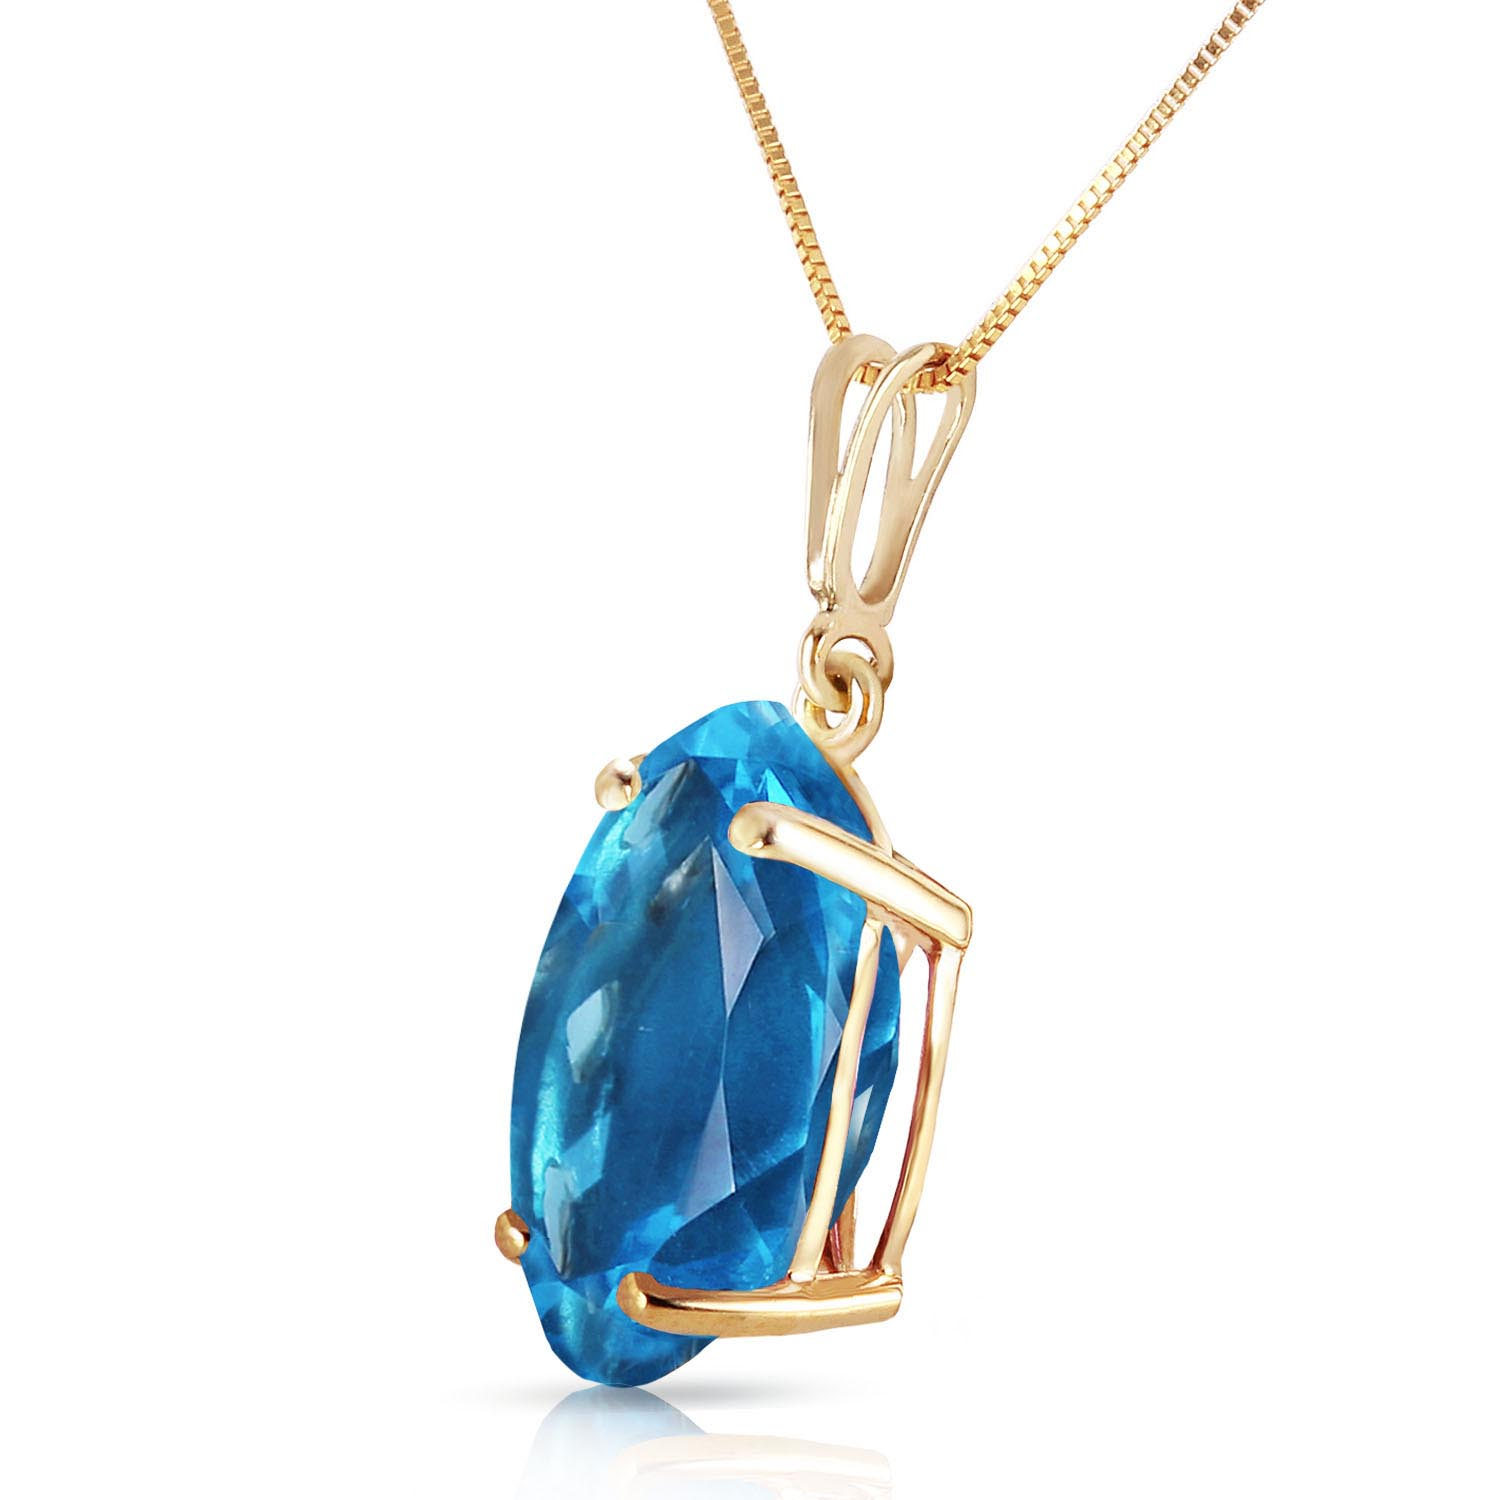 Oval Cut Blue Topaz Pendant Necklace 8.0ct in 9ct Gold